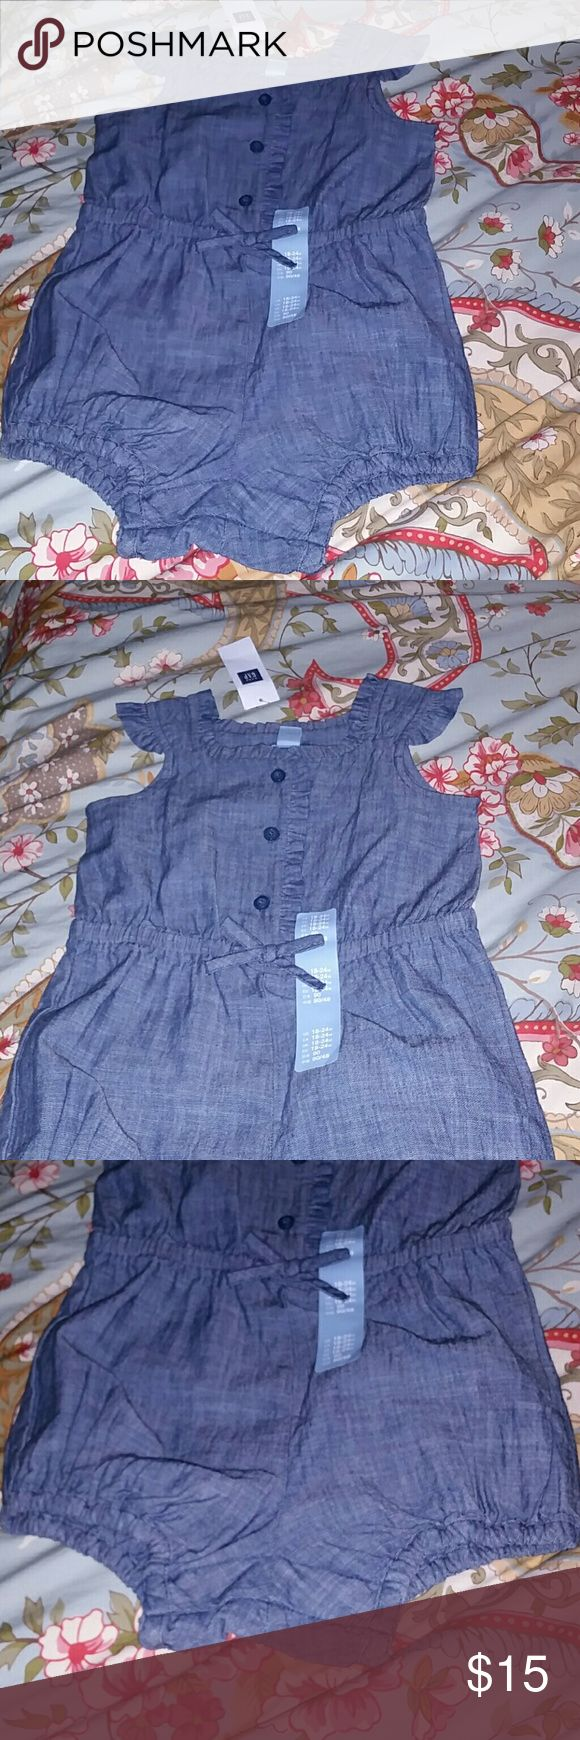 Baby gap chambray romper size 18 24 months nwt